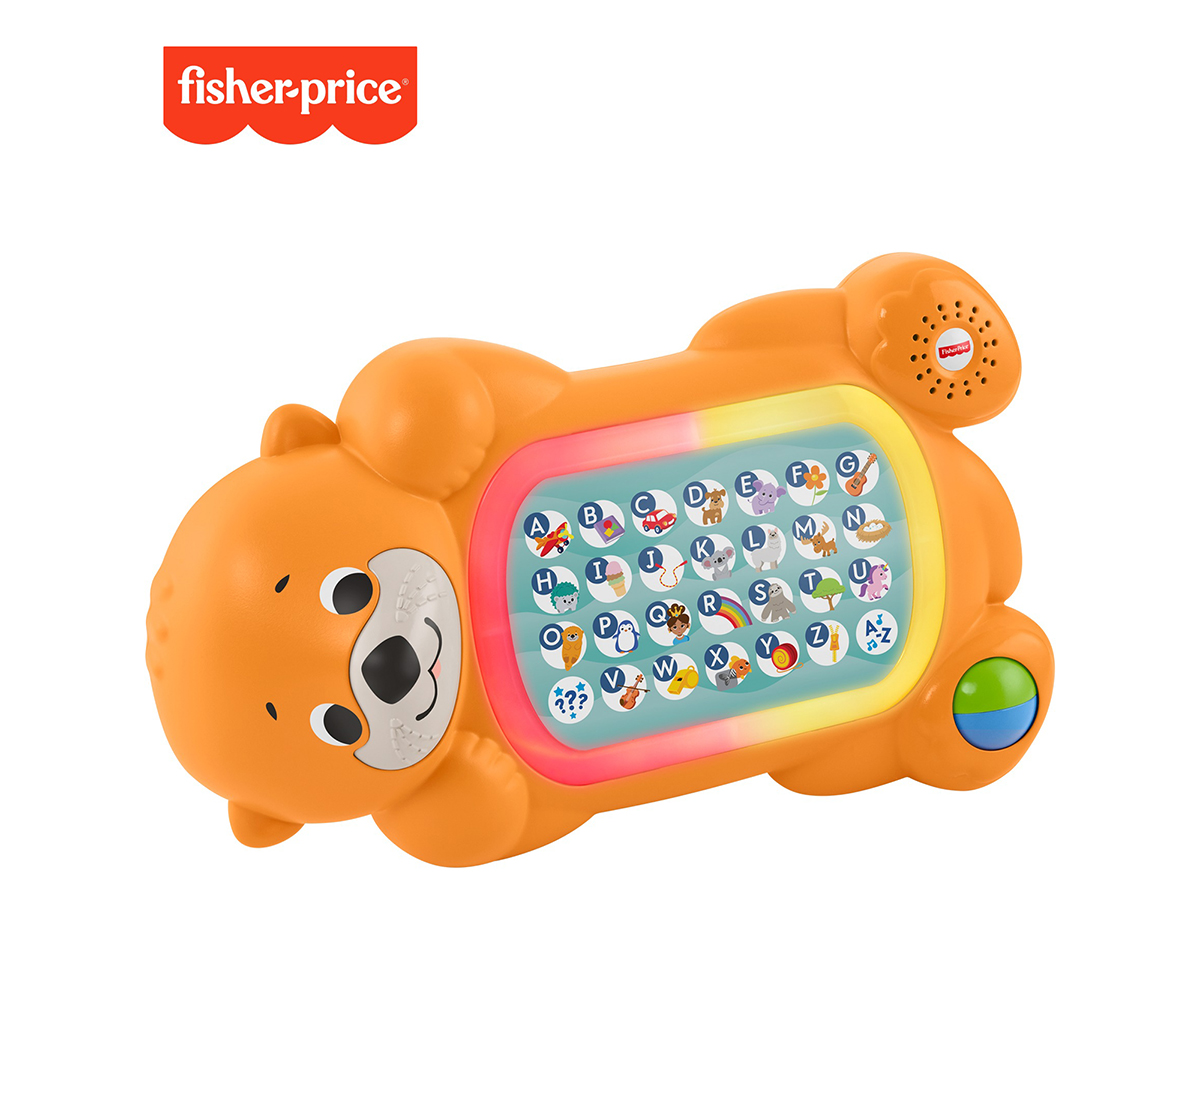 Fisher-Price | Fisher-Price Linkimals A To Z Otter, Learning Toys for Kids age 9M+